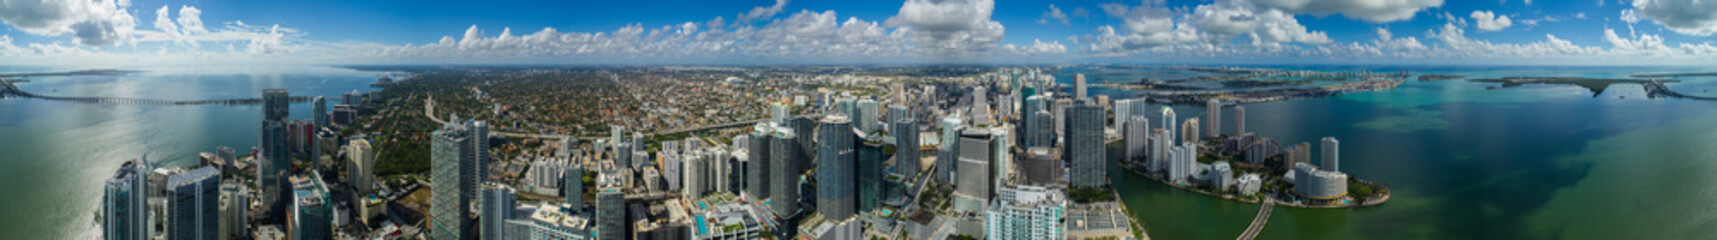 Amazing aerial Brickell Miami Florida large scale